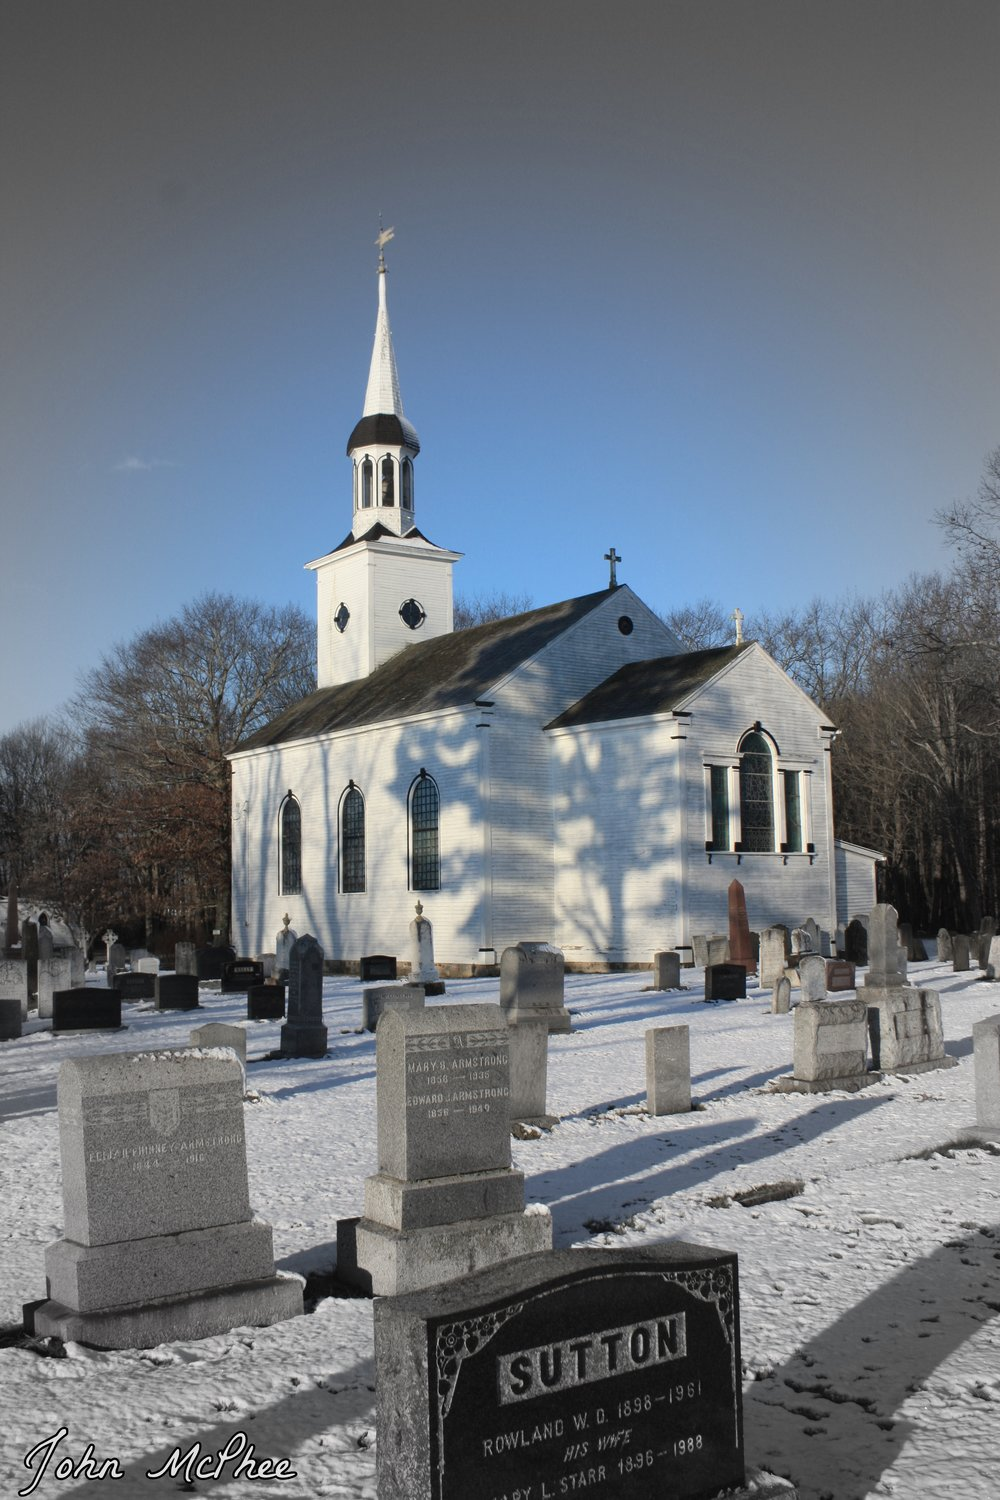 St. John's Anglican Church cemetery in Port Williams, Kings County. (JOHN McPHEE)